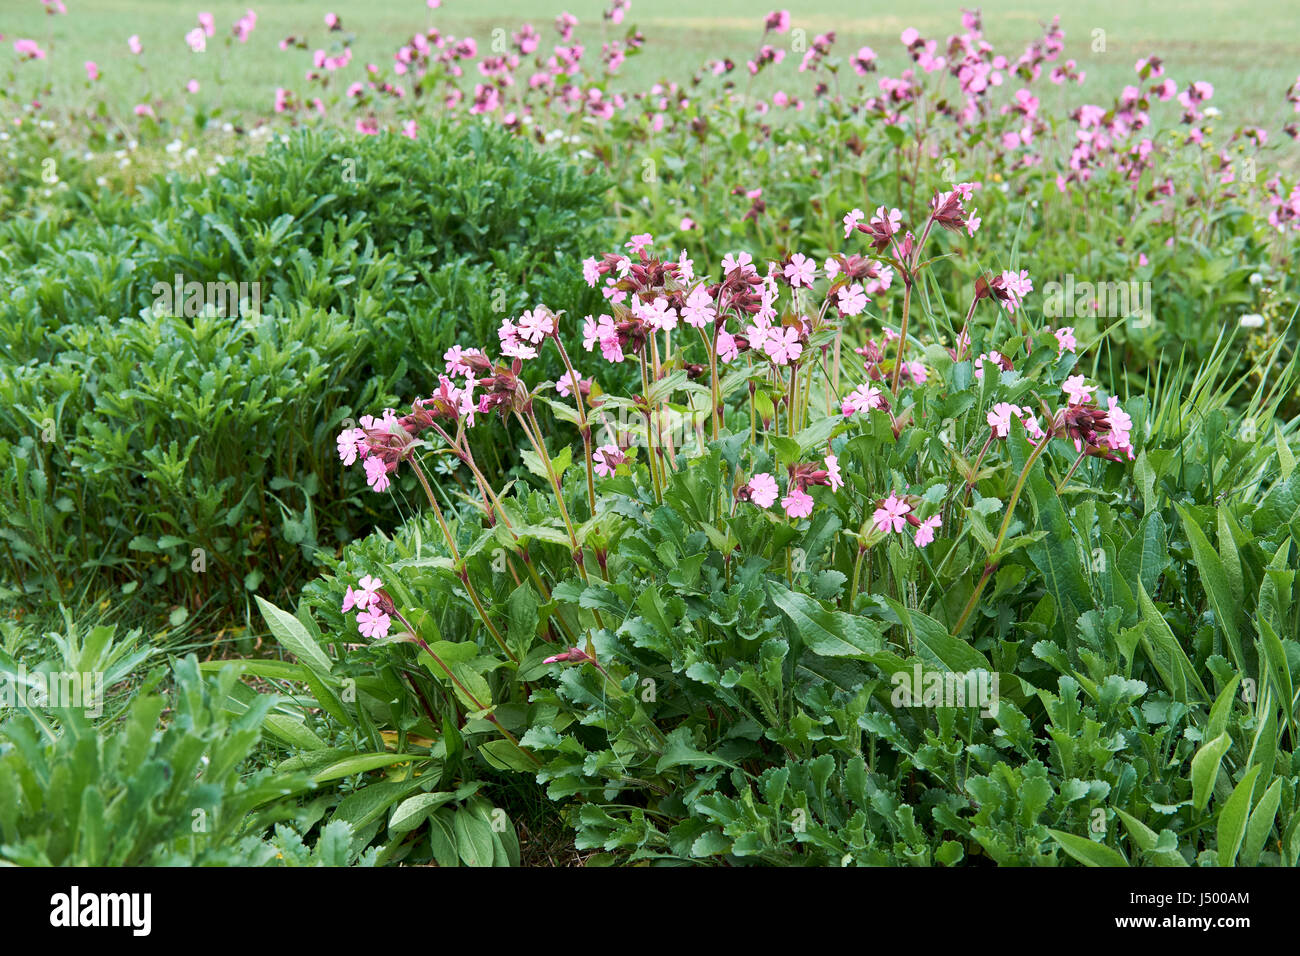 Red Campion (Silene dioica) planted along a field margin wildlife habitat conservation zone, UK. - Stock Image